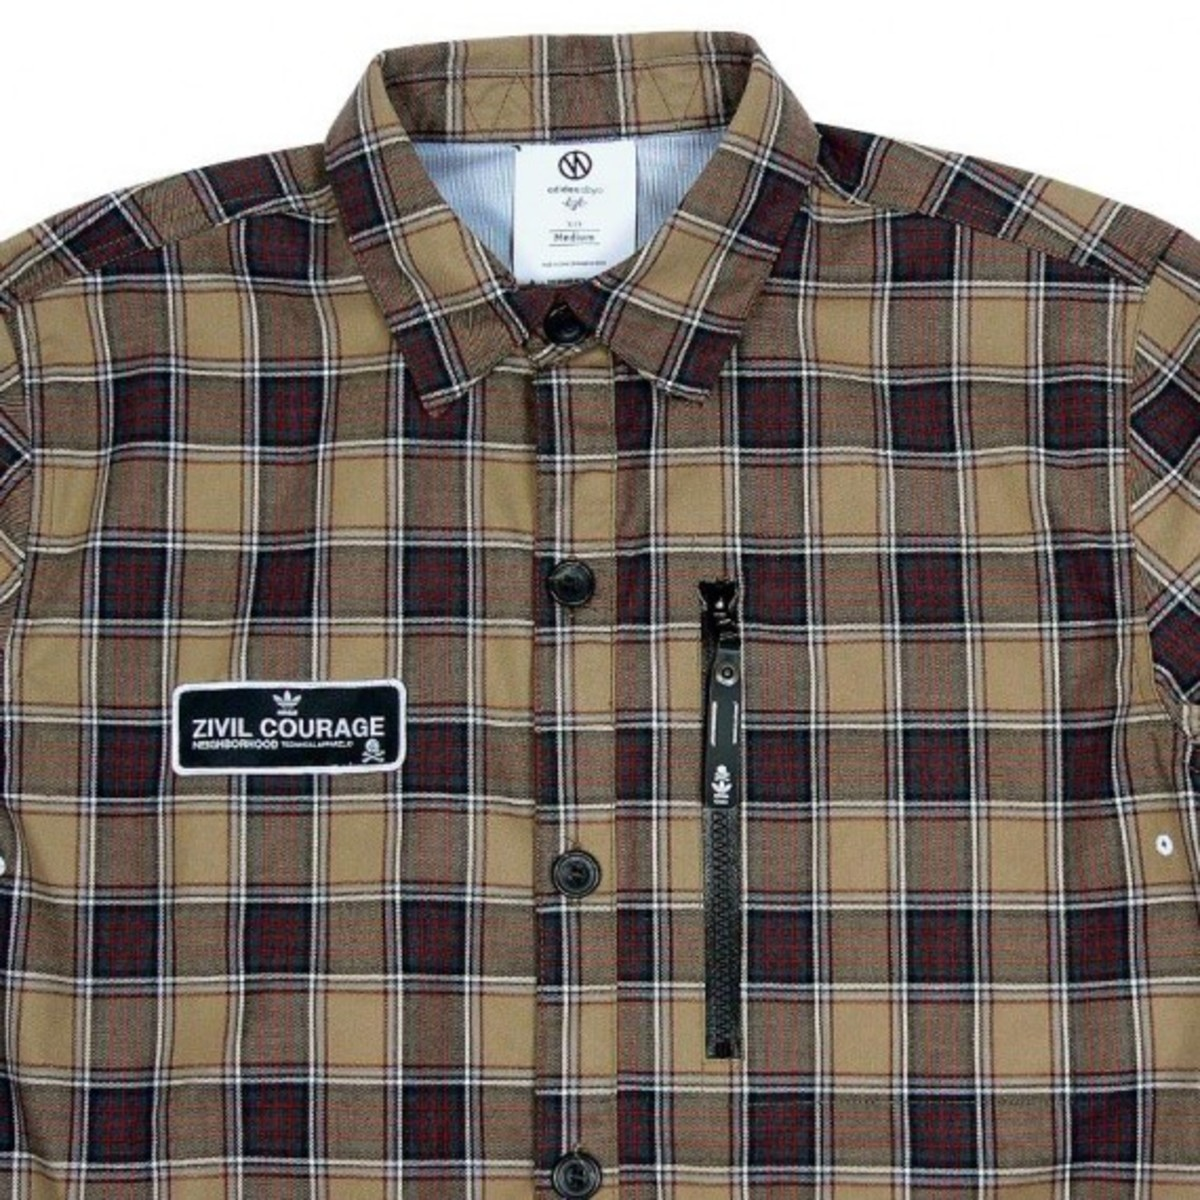 neighborhood-adidas-obyo-gore-tex-shirt-06